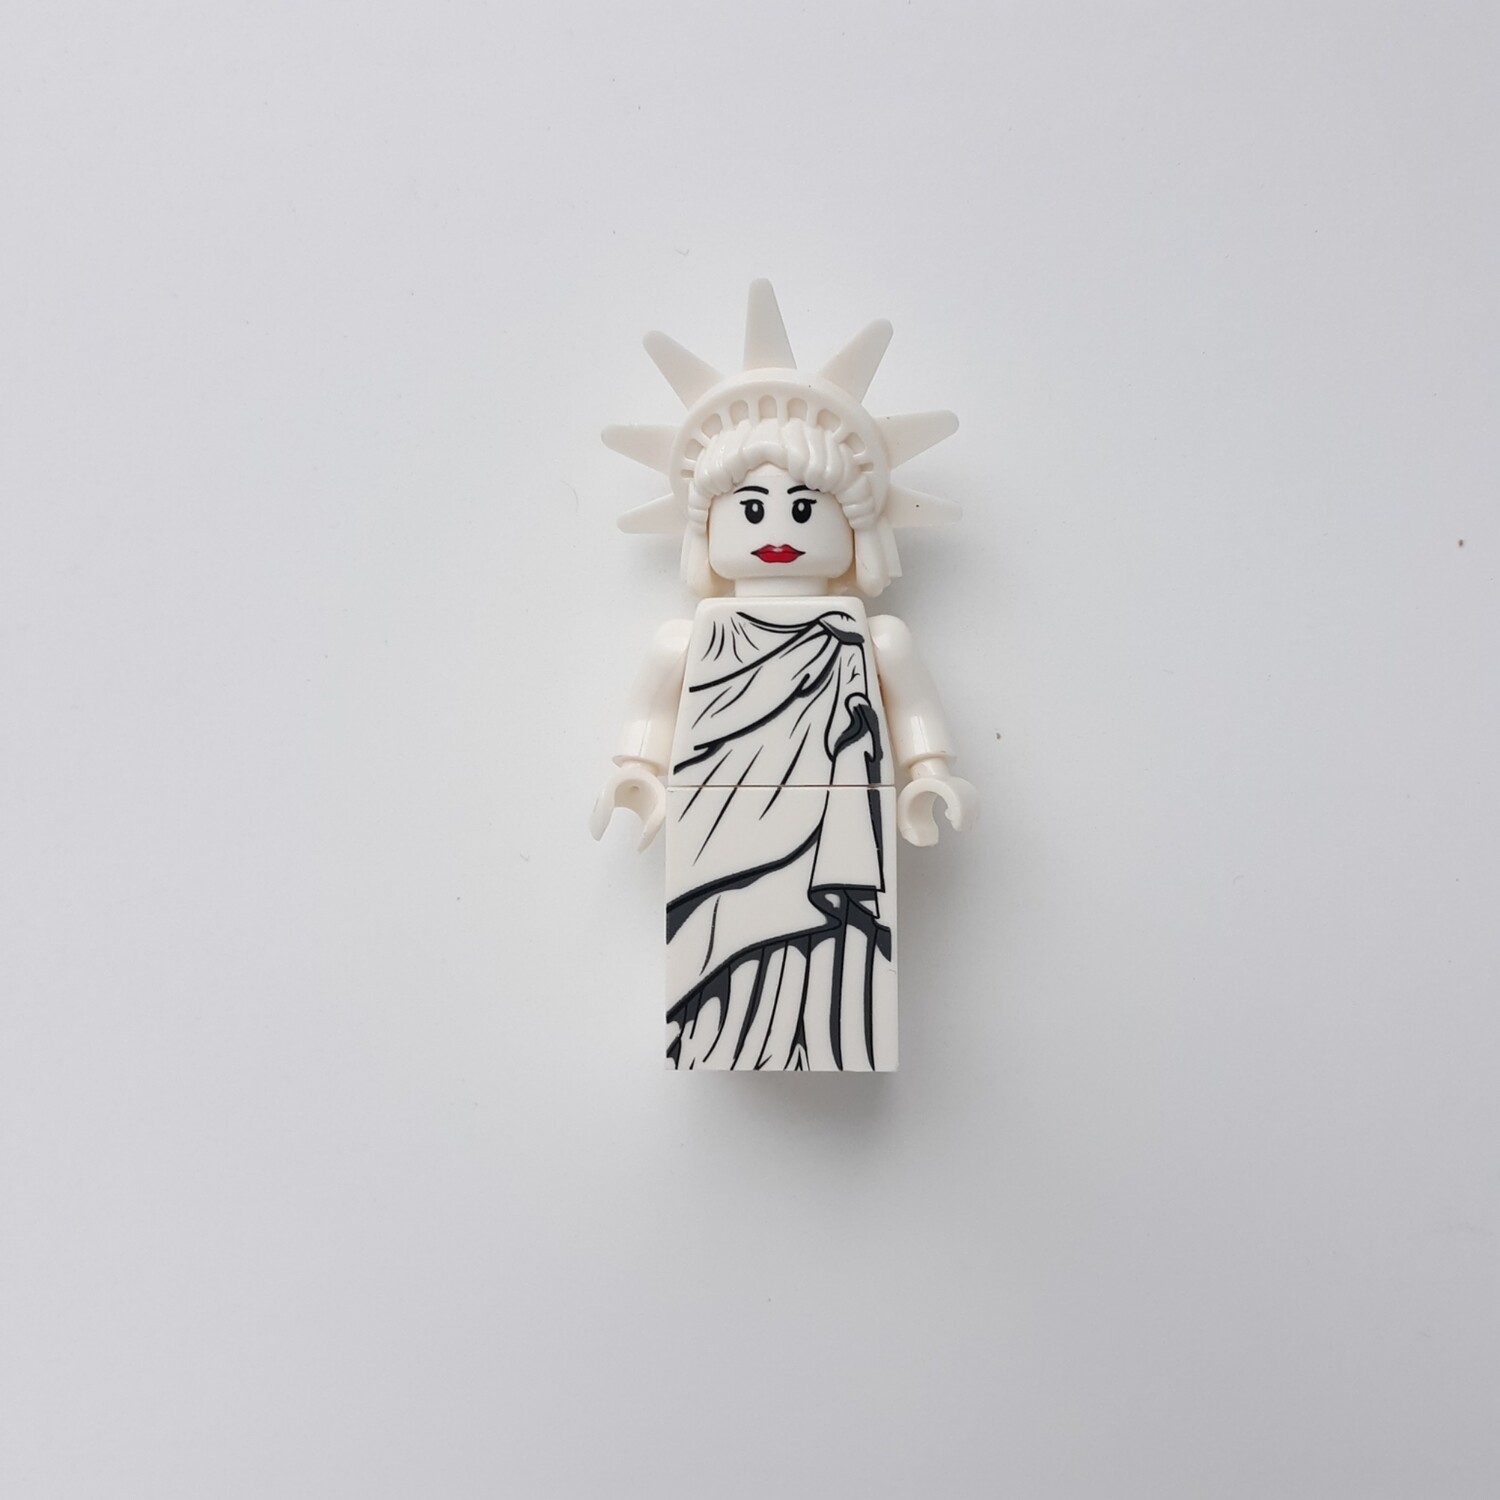 Minifigure Soap - Statue of Liberty